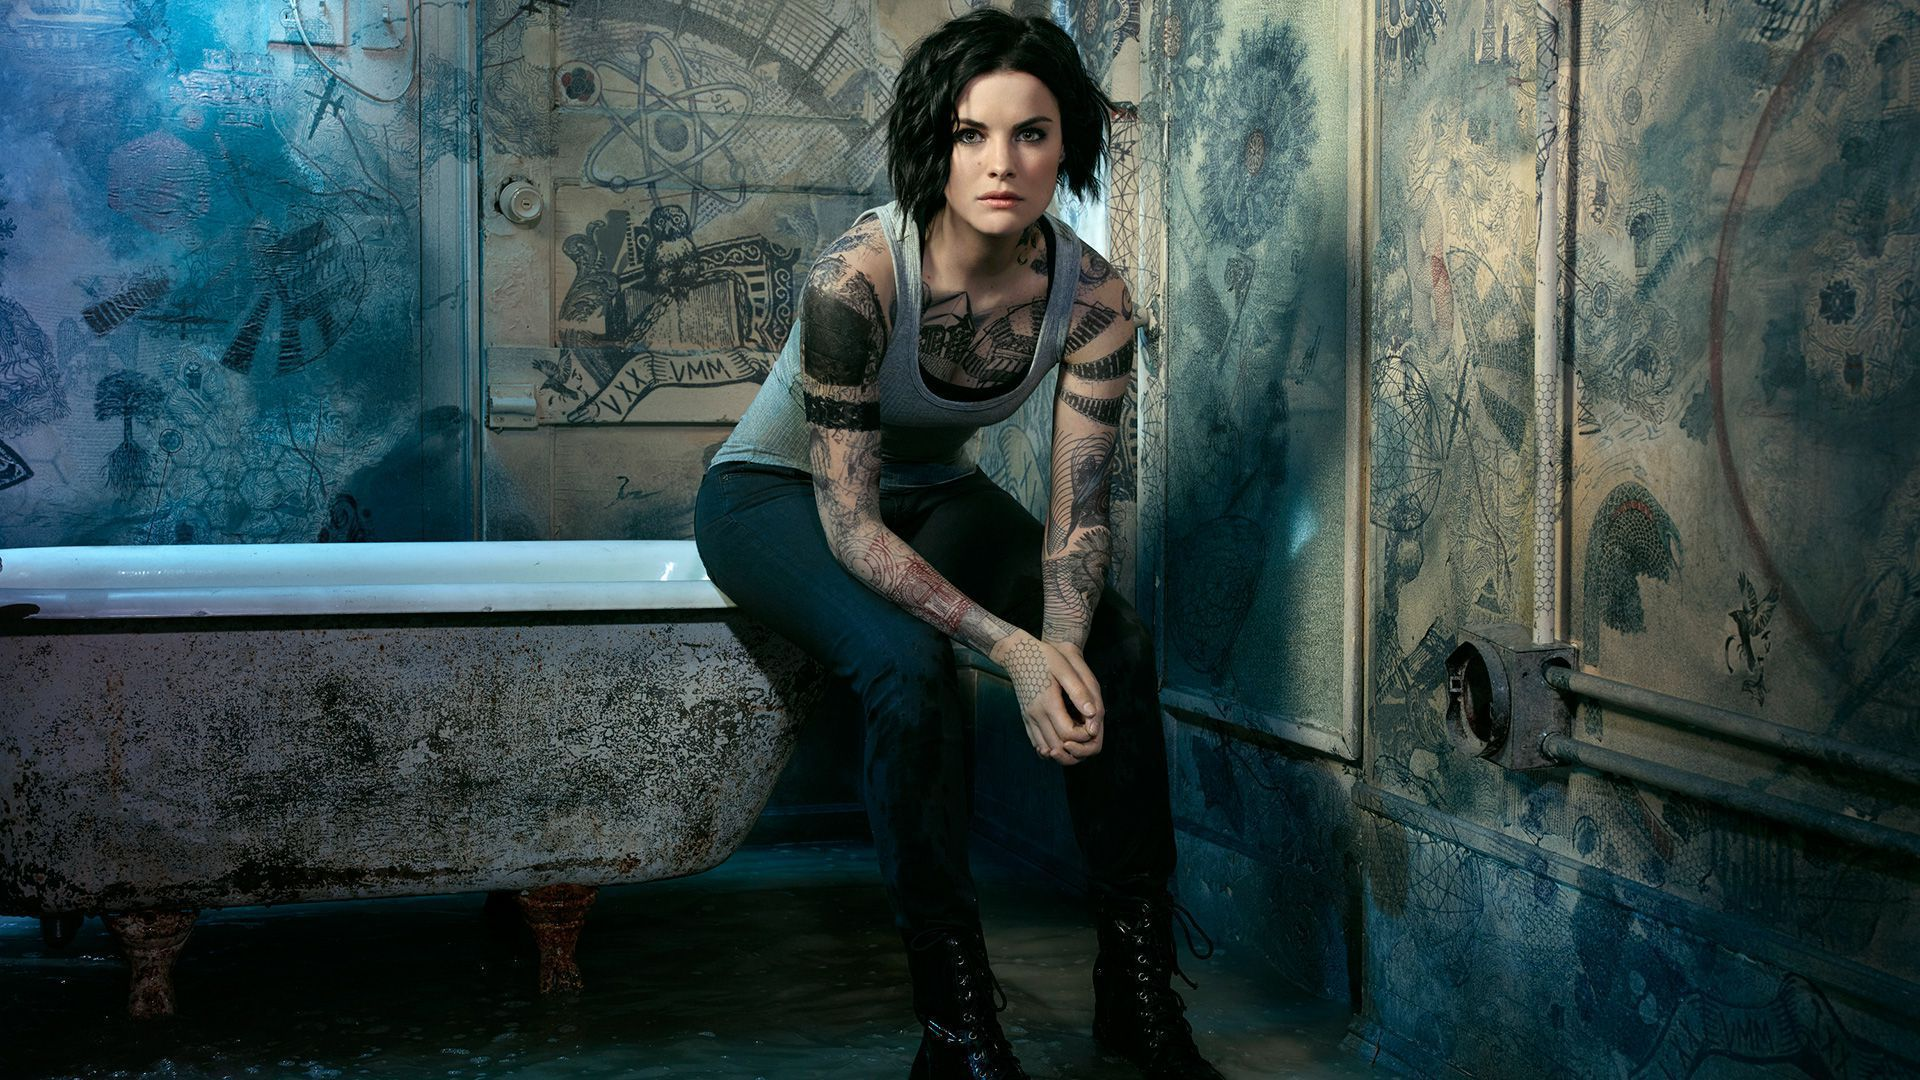 Jaimie-Alexander-Wallpaper-for-Computer